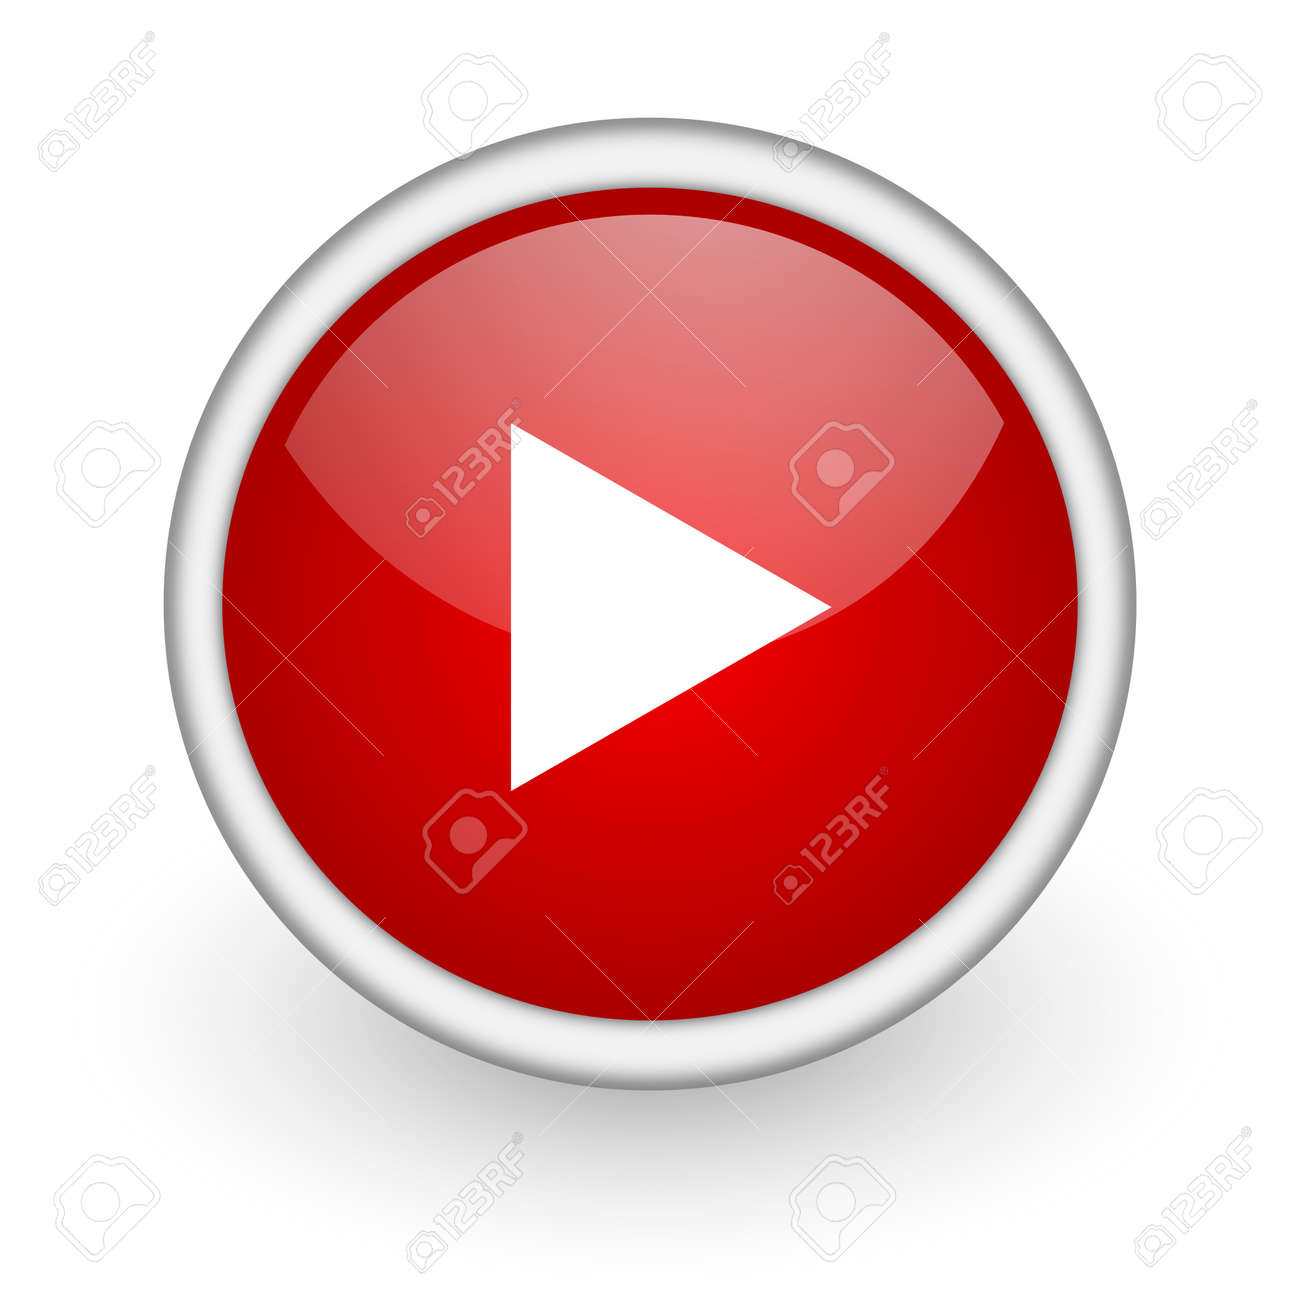 play red circle web icon on white background Stock Photo - 17518184